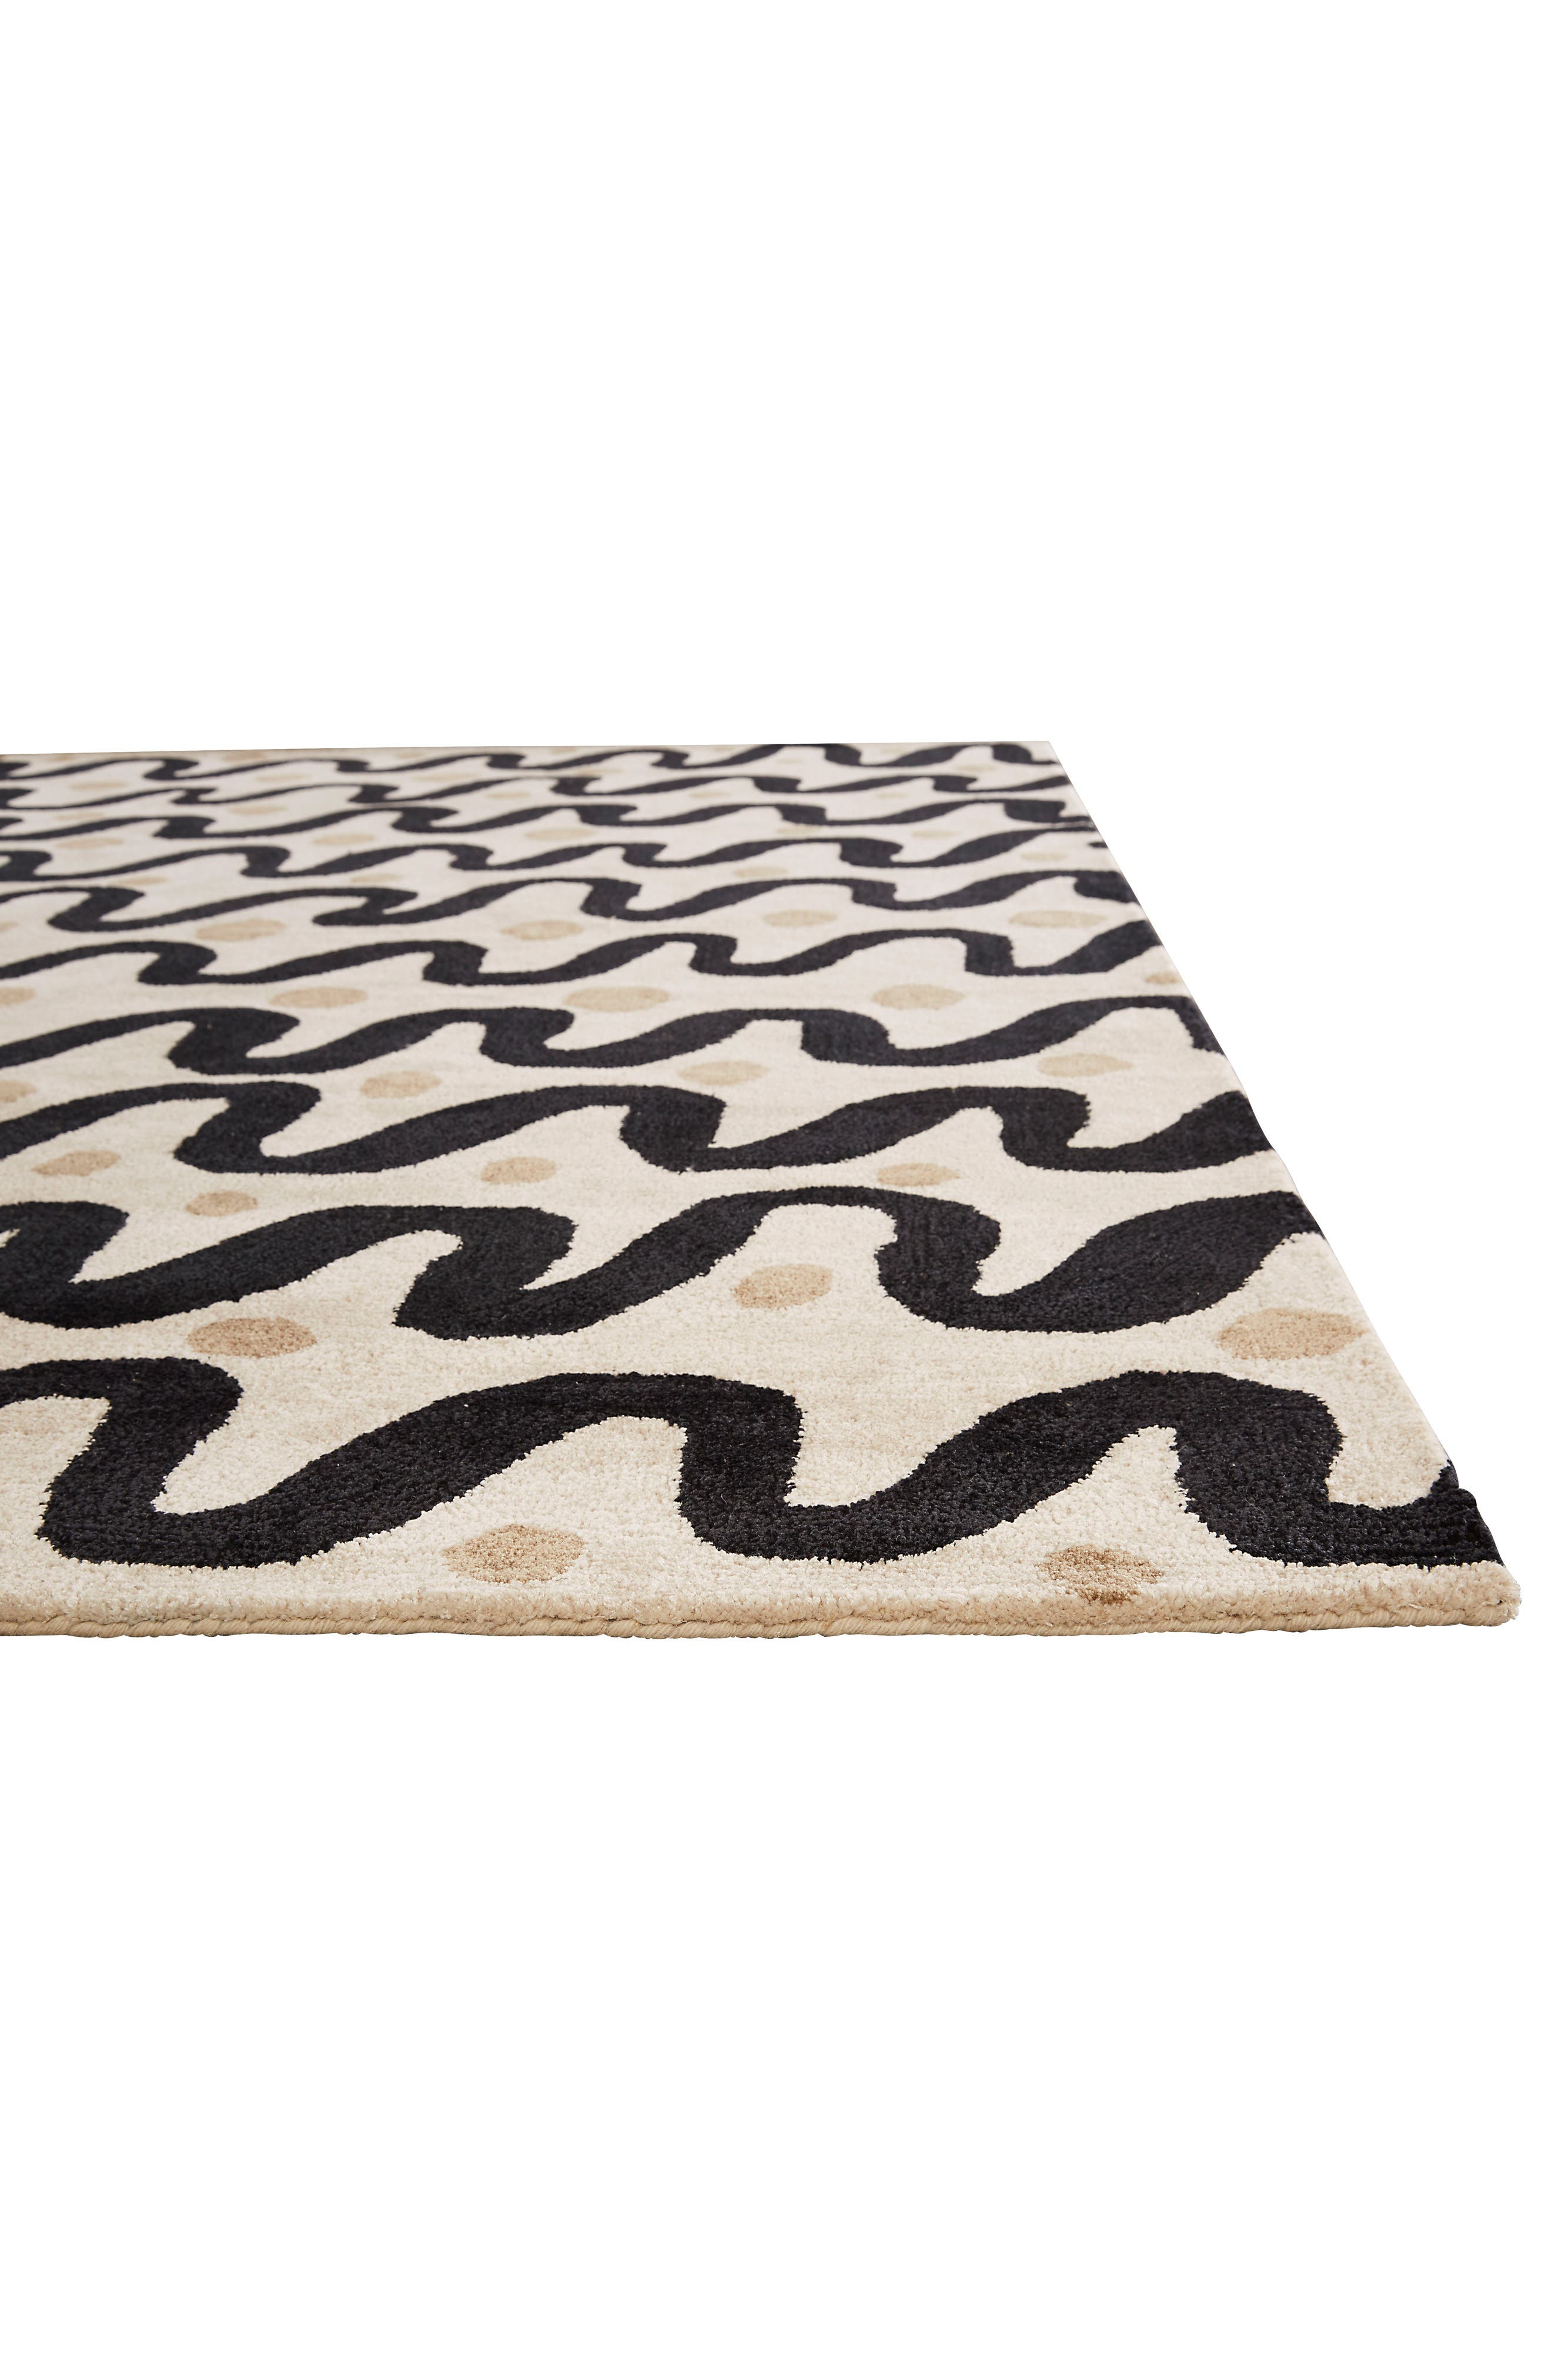 contemporary waves rug,                             Alternate thumbnail 3, color,                             250